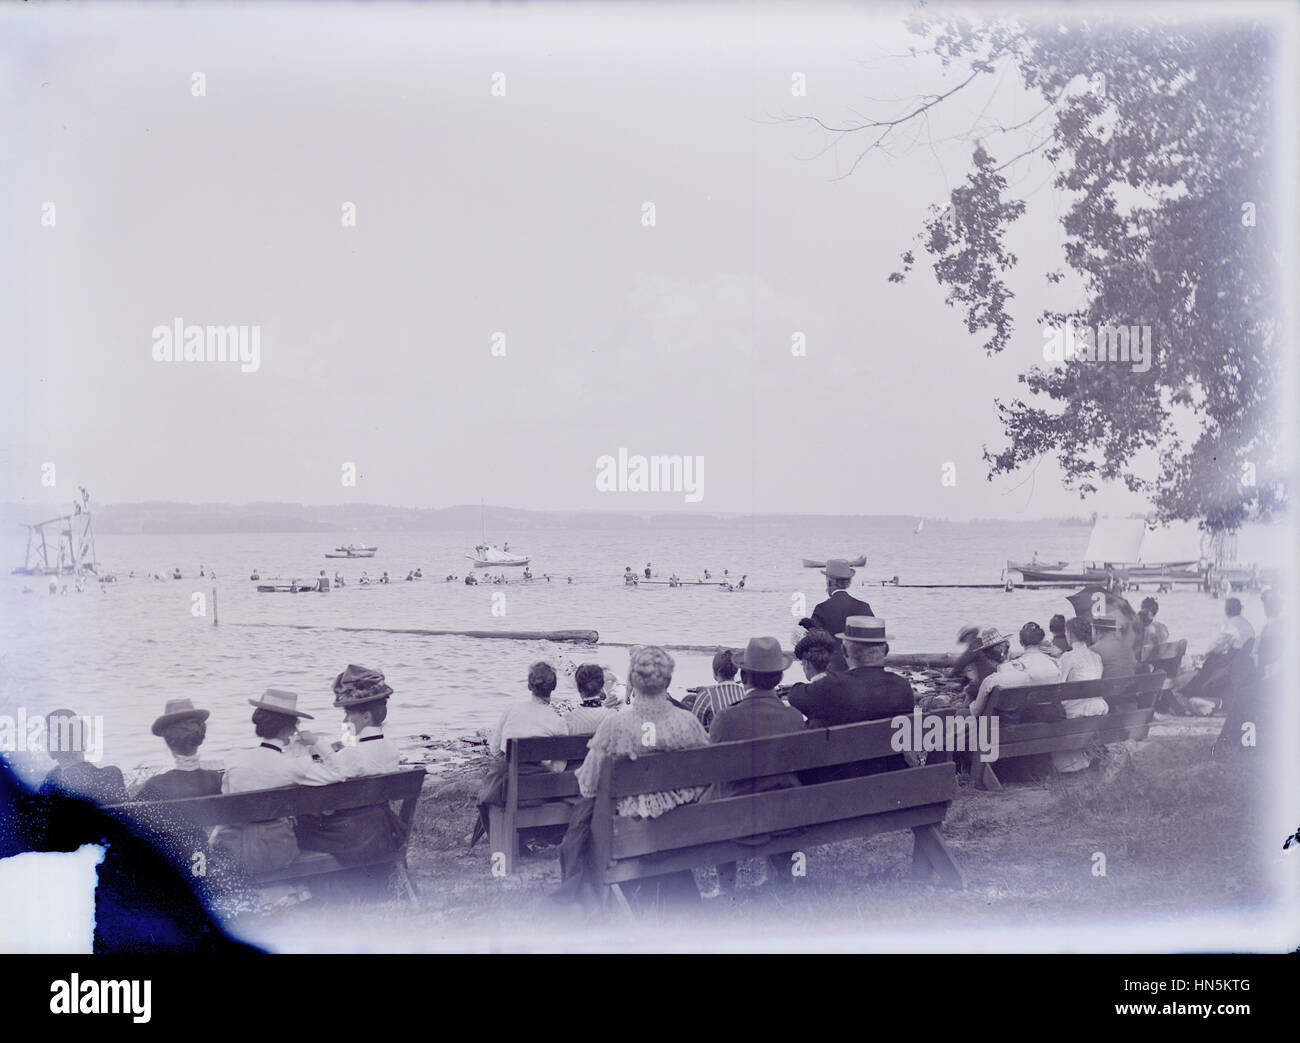 Antique August 22, 1900 photograph, swimmers and observers Bathing Beach on Chautauqua Lake, New York, USA. - Stock Image